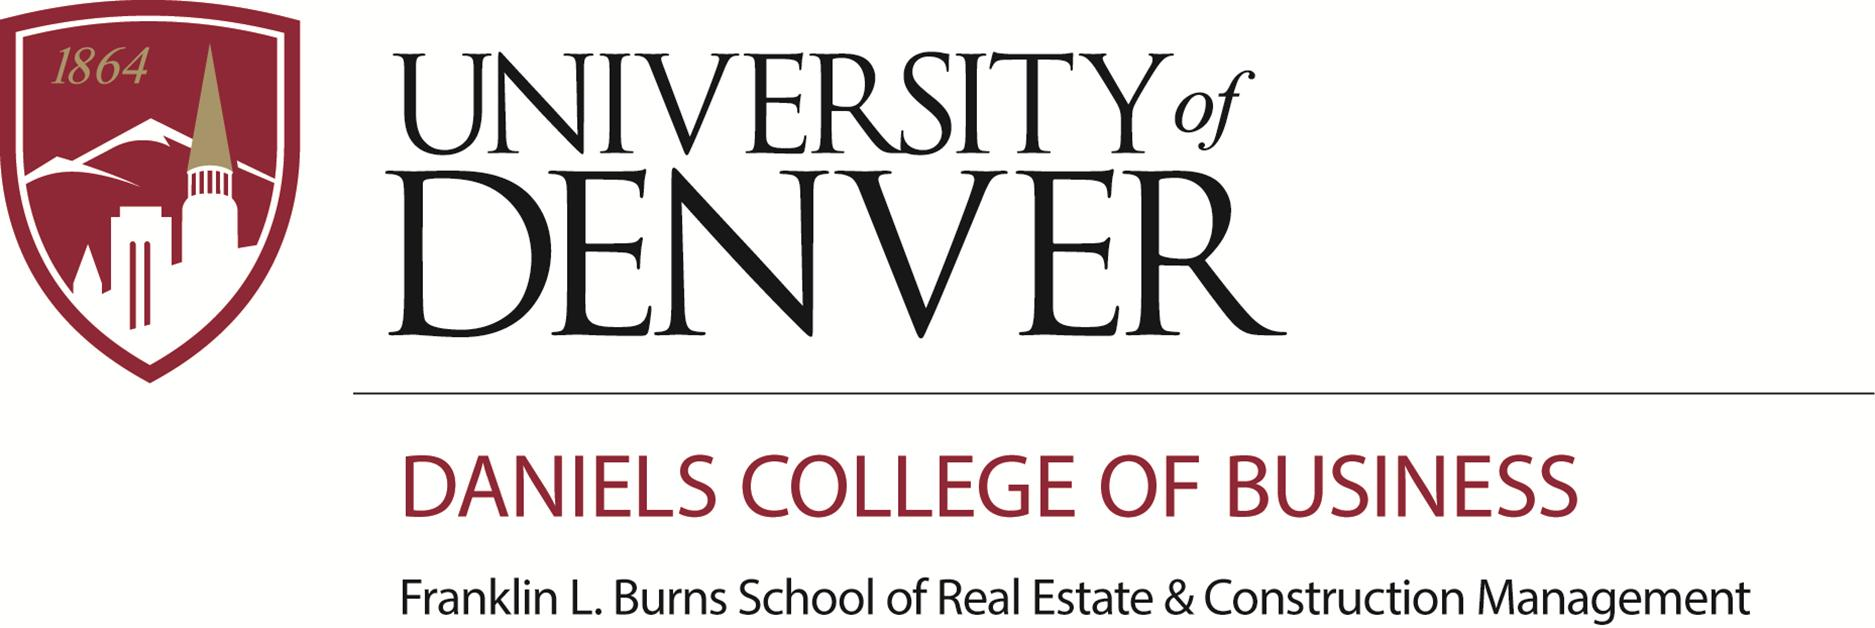 University of Denver, Daniels College of Business, Franklin L. Burns School of Real Estate and Construction Management